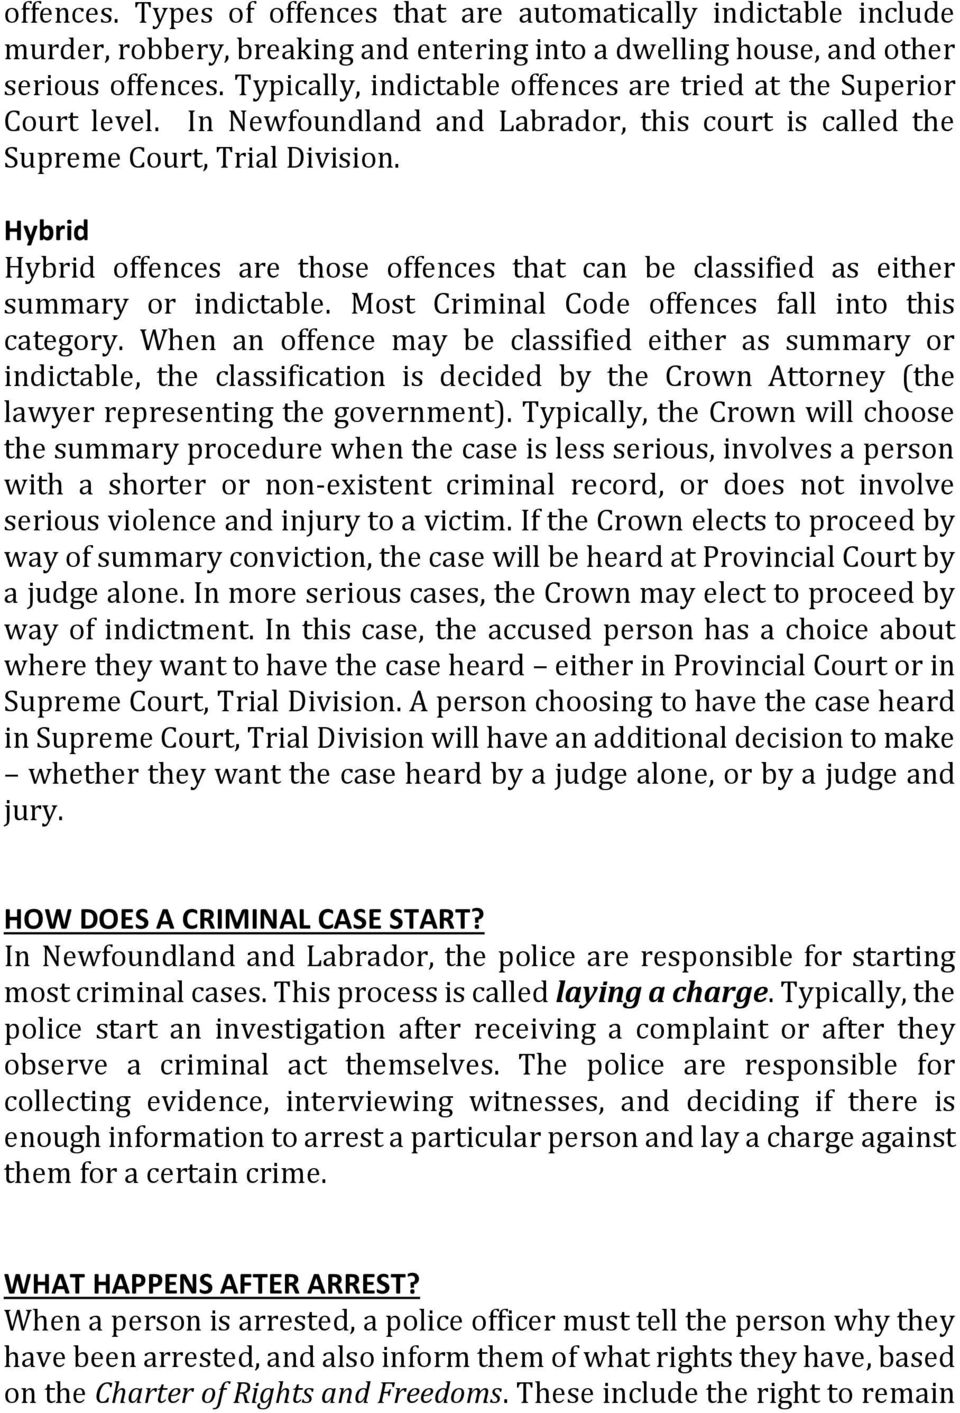 Hybrid Hybrid offences are those offences that can be classified as either summary or indictable. Most Criminal Code offences fall into this category.